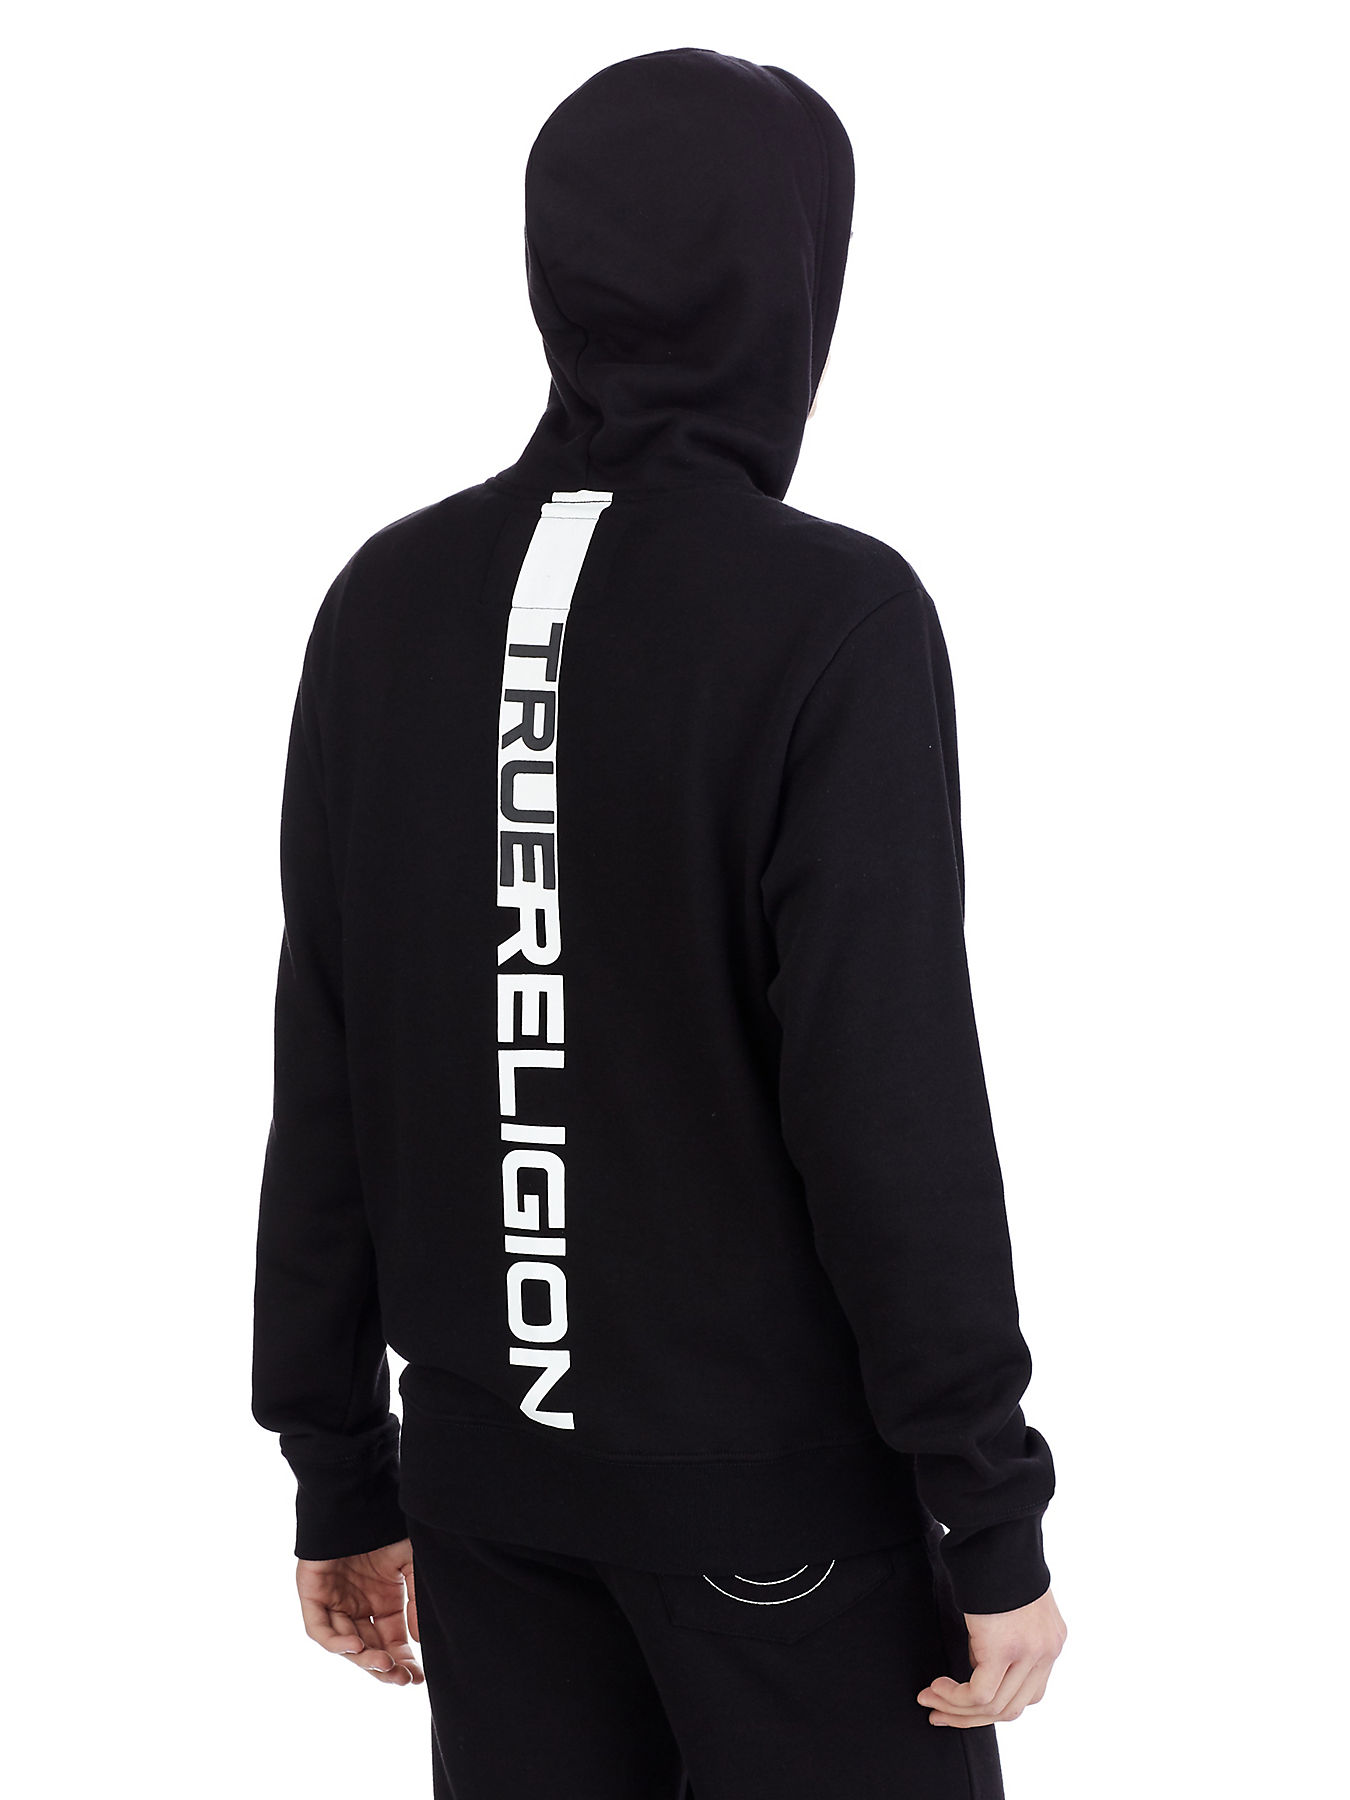 5d7a339dea9 DEBOSS ACTIVE ZIP UP MENS HOODIE